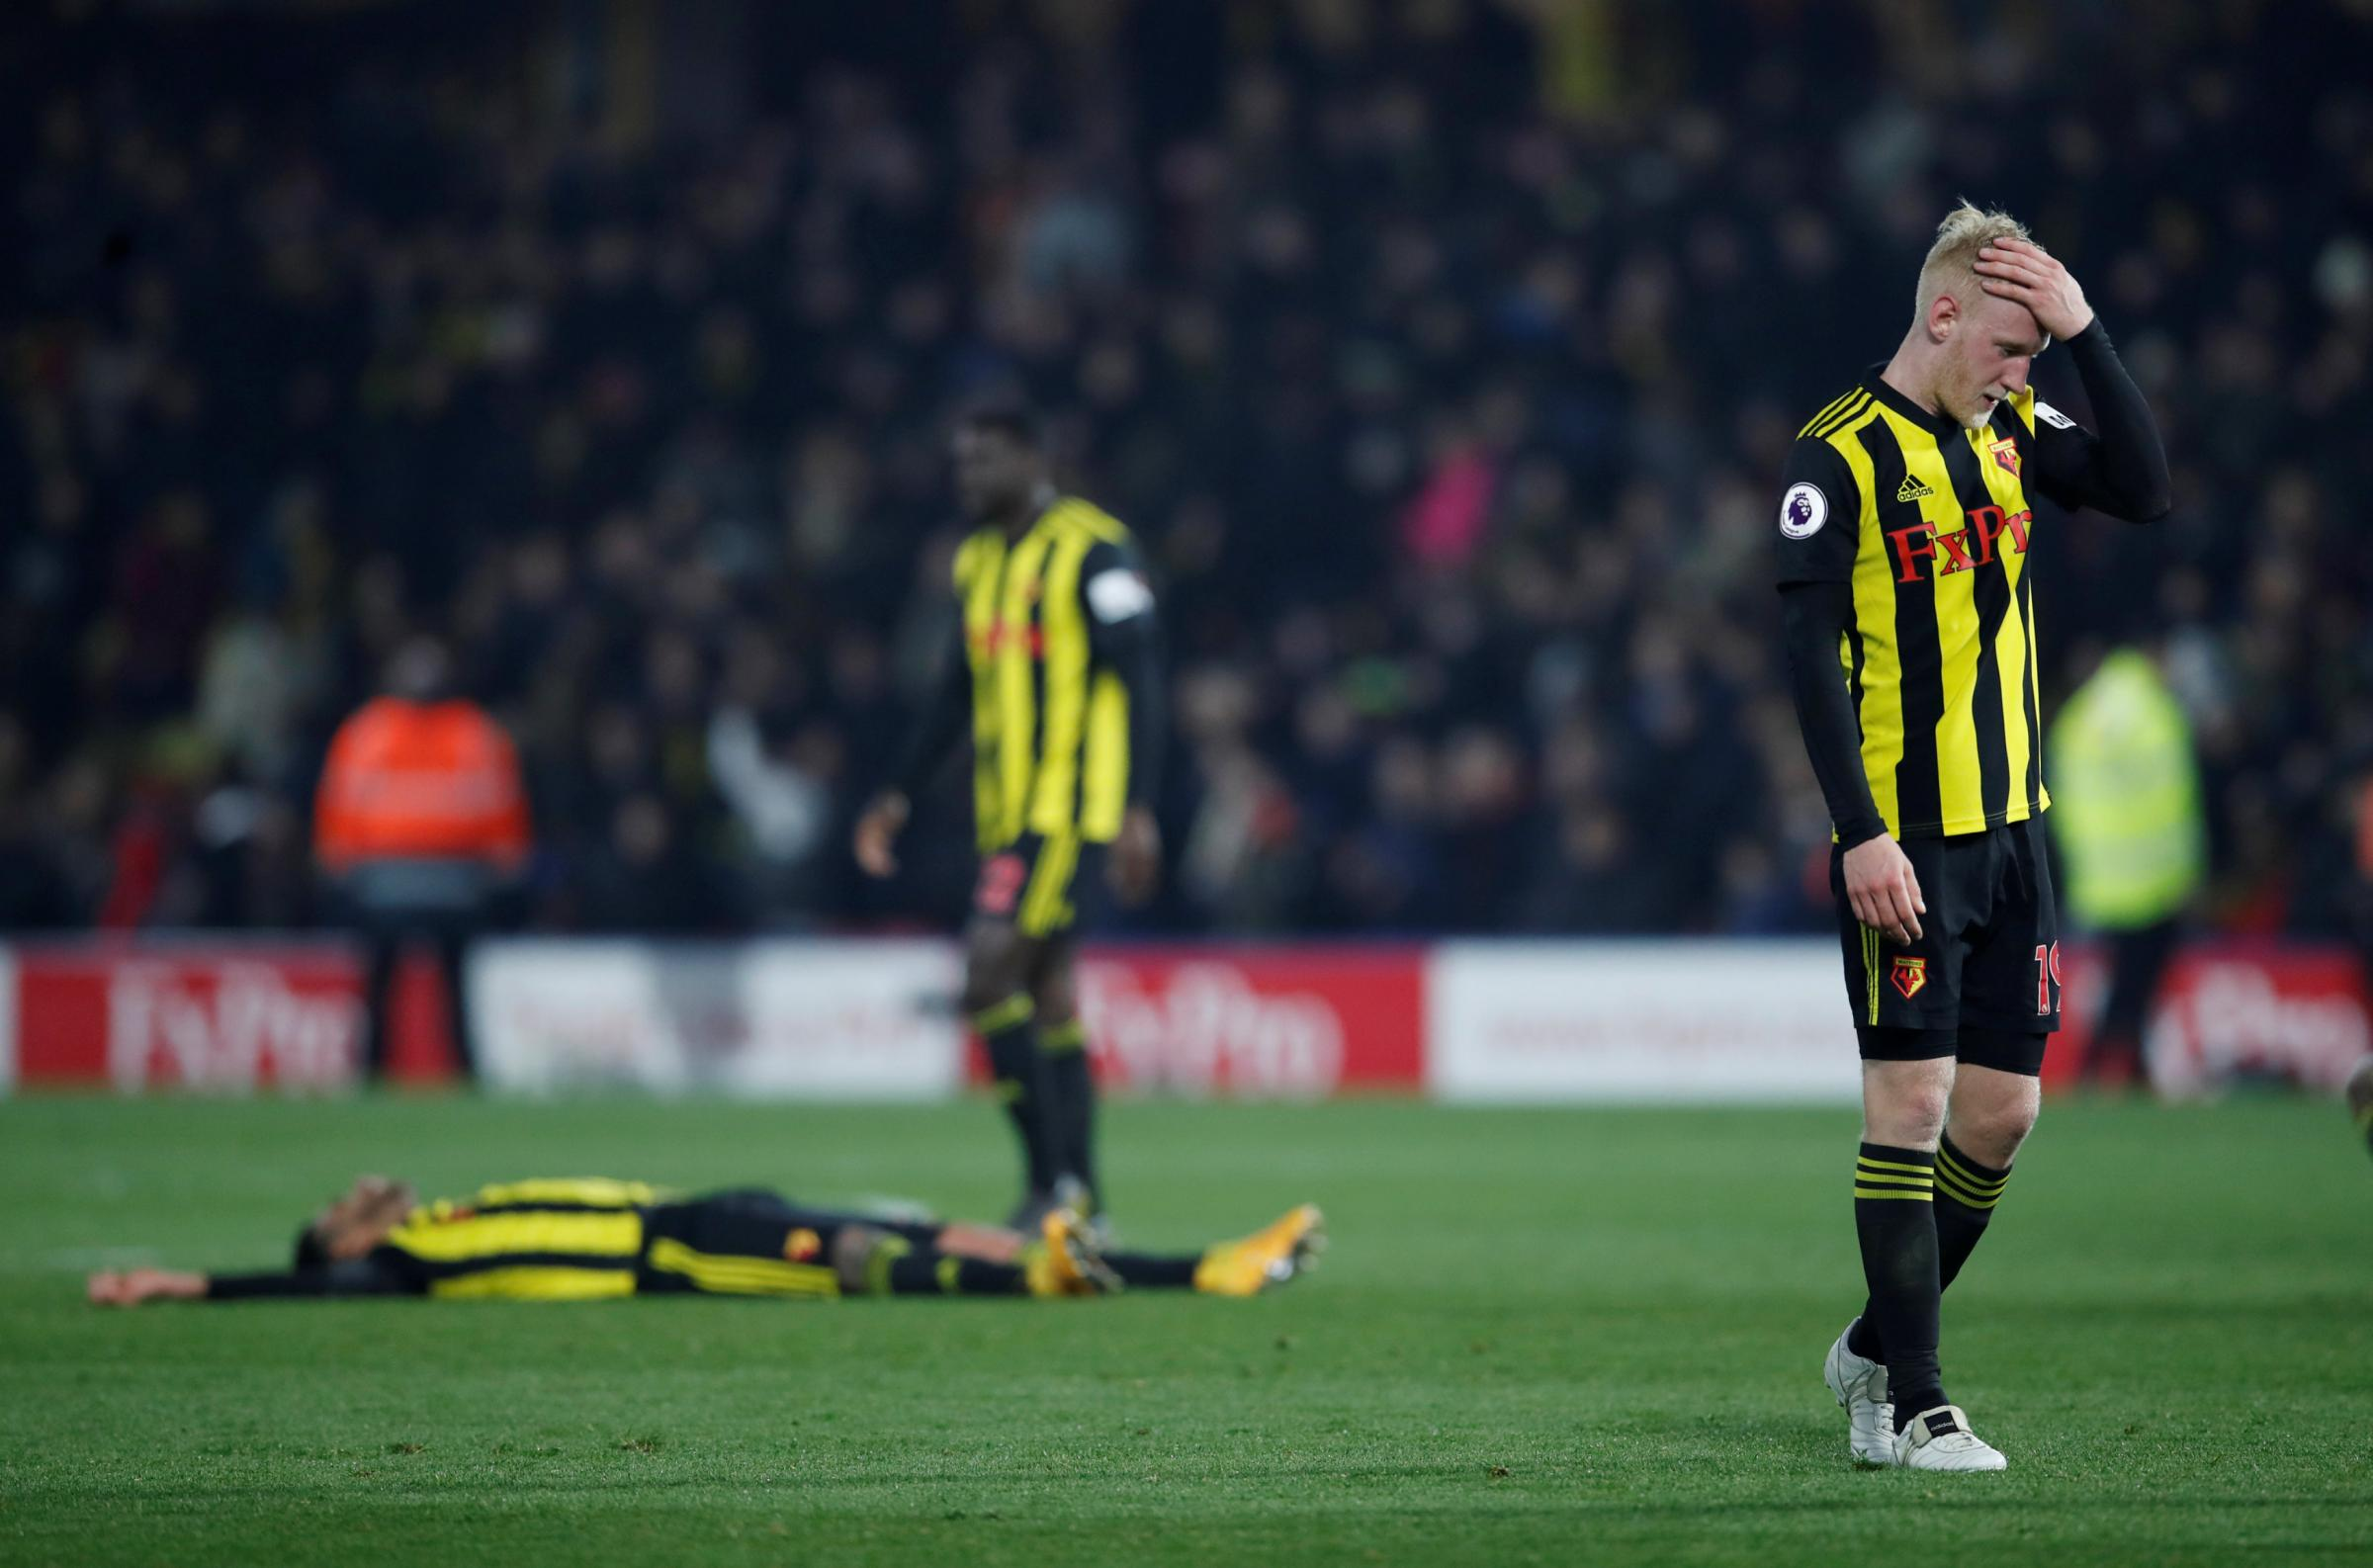 Watford were made to work after playing against Arsenal with ten men. Picture: Action Images